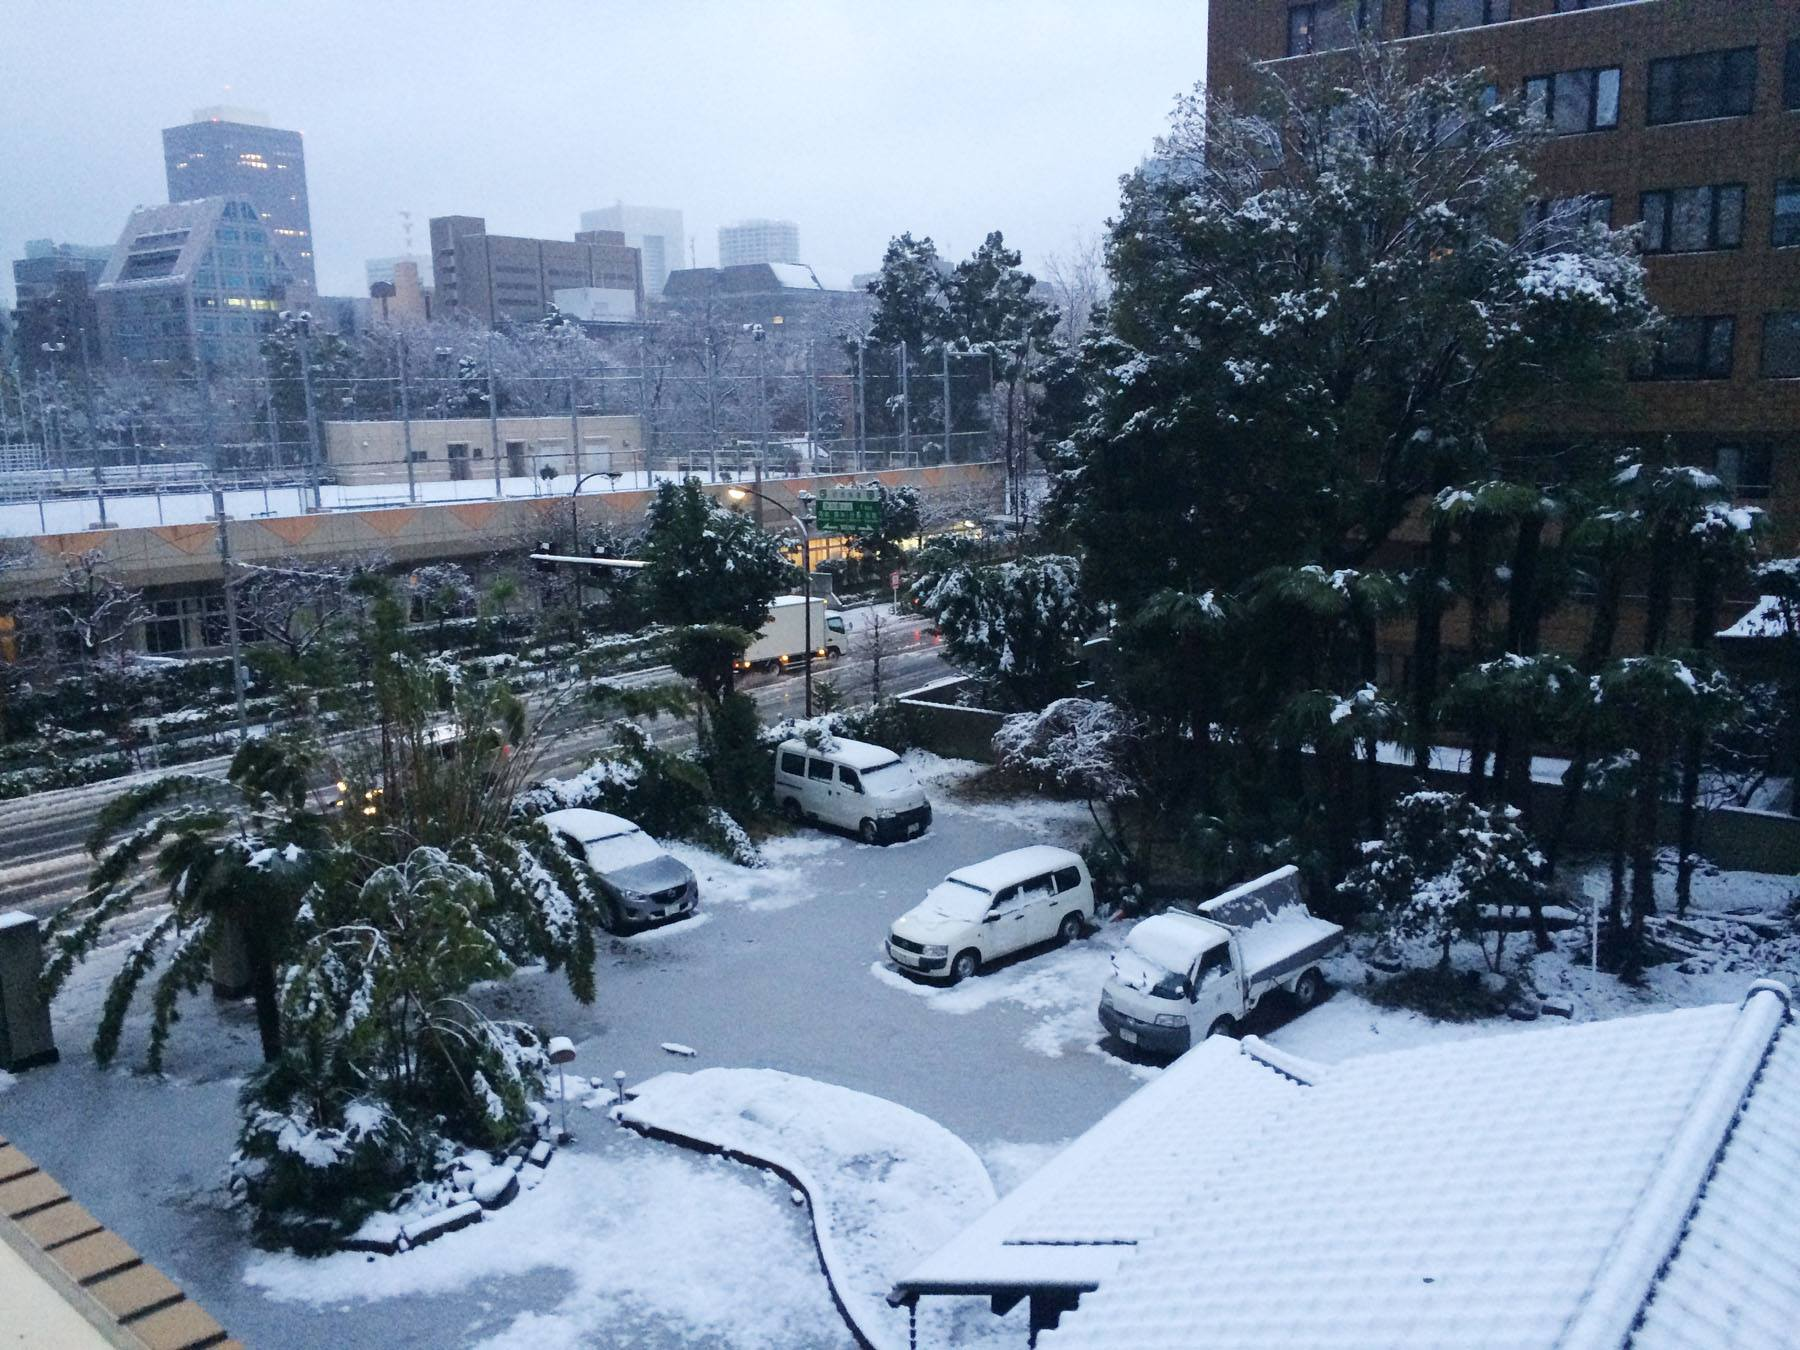 Image of November Snow, Japan After Almost 50 Years November Snow, November snow for the first time in over 50 years, wet snow in the capital of Japan, up to 1 inch of snow fell in city of Tokyo